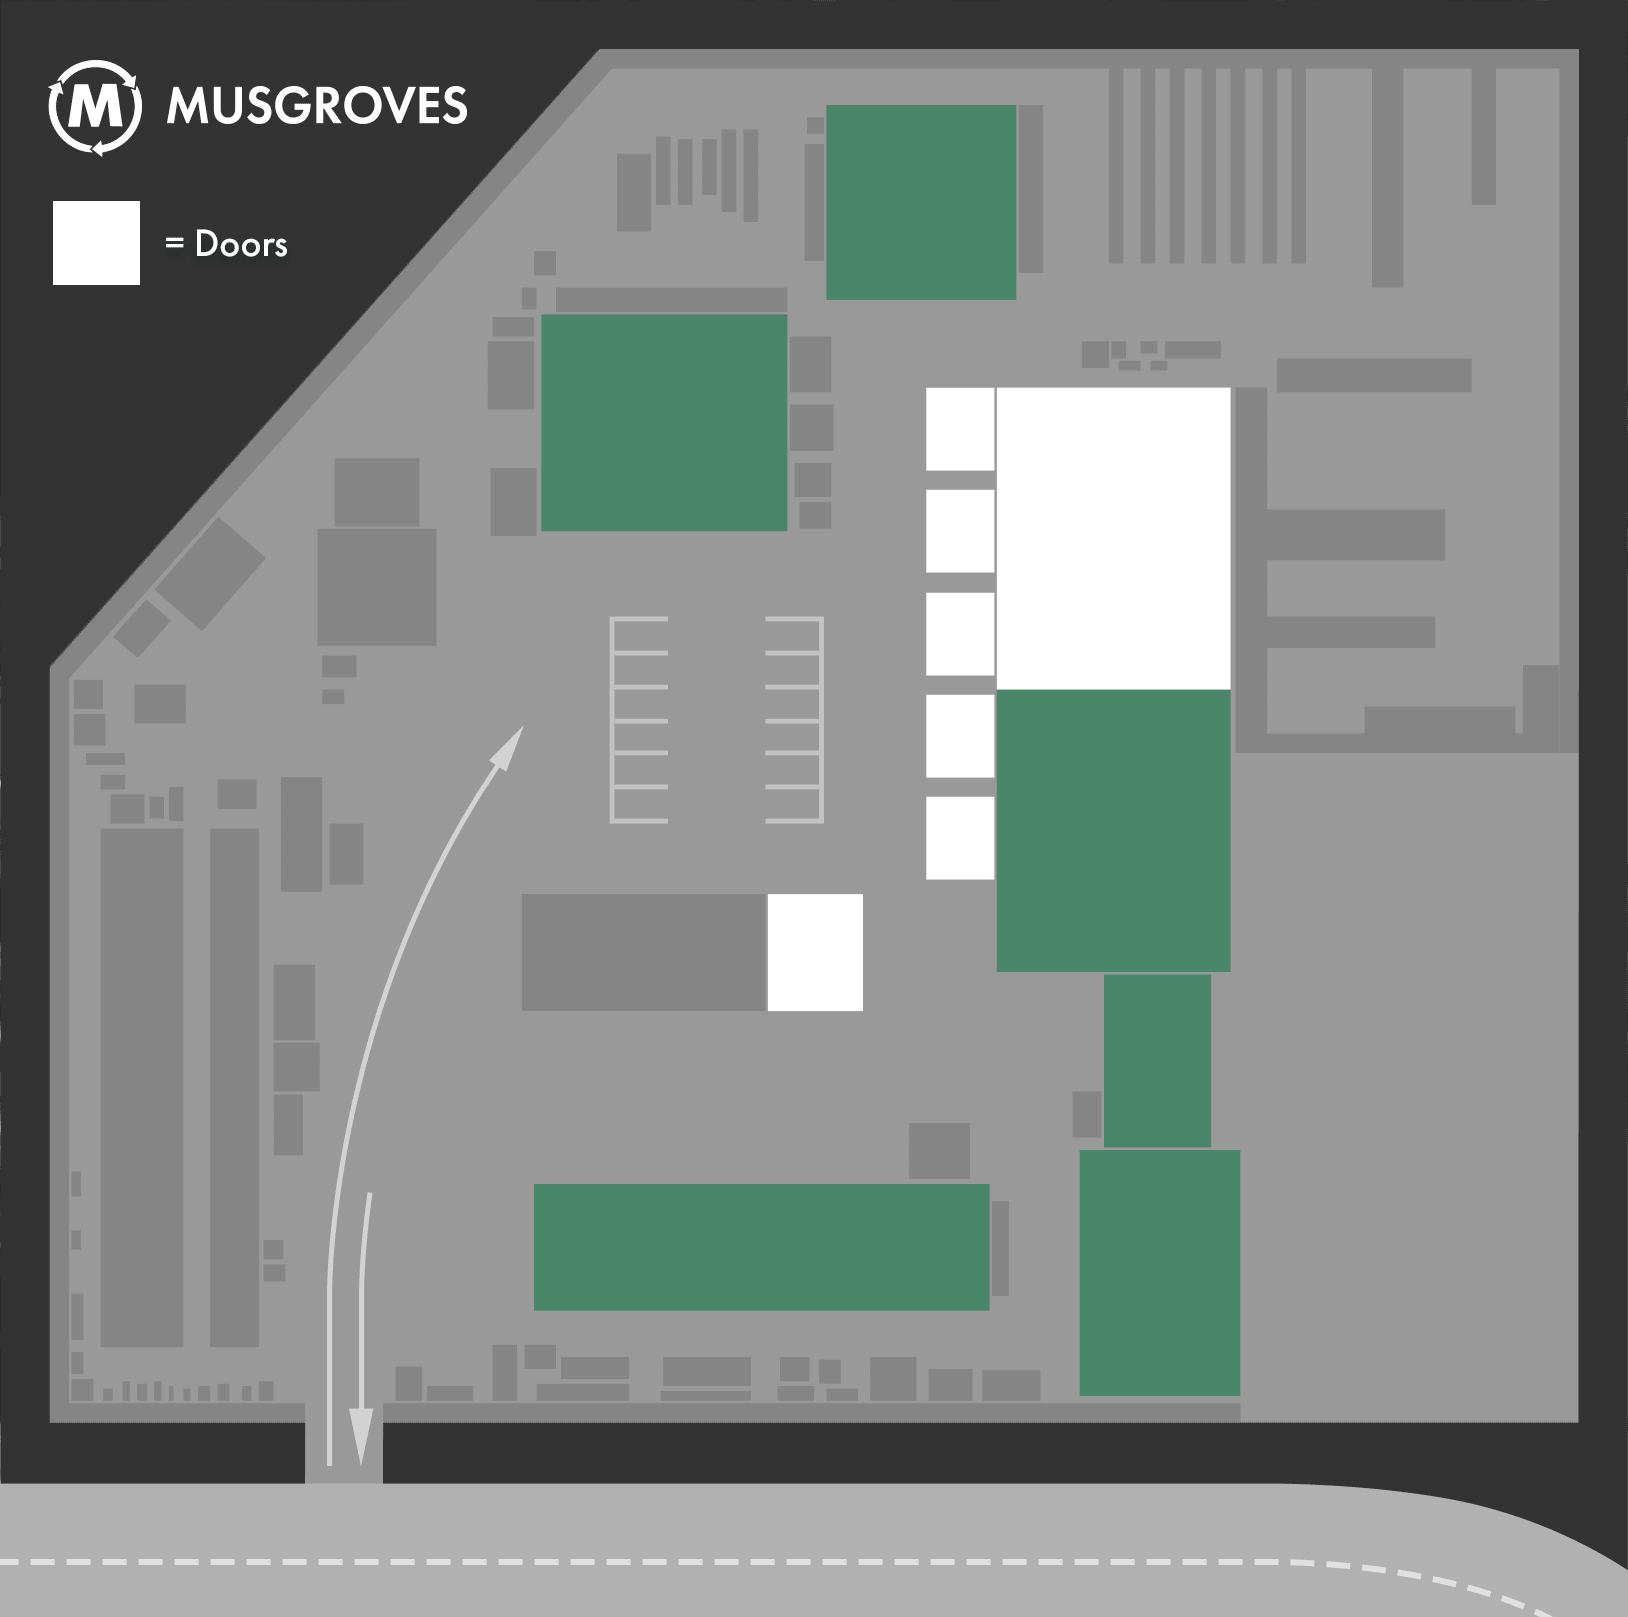 Location of doors at Musgroves